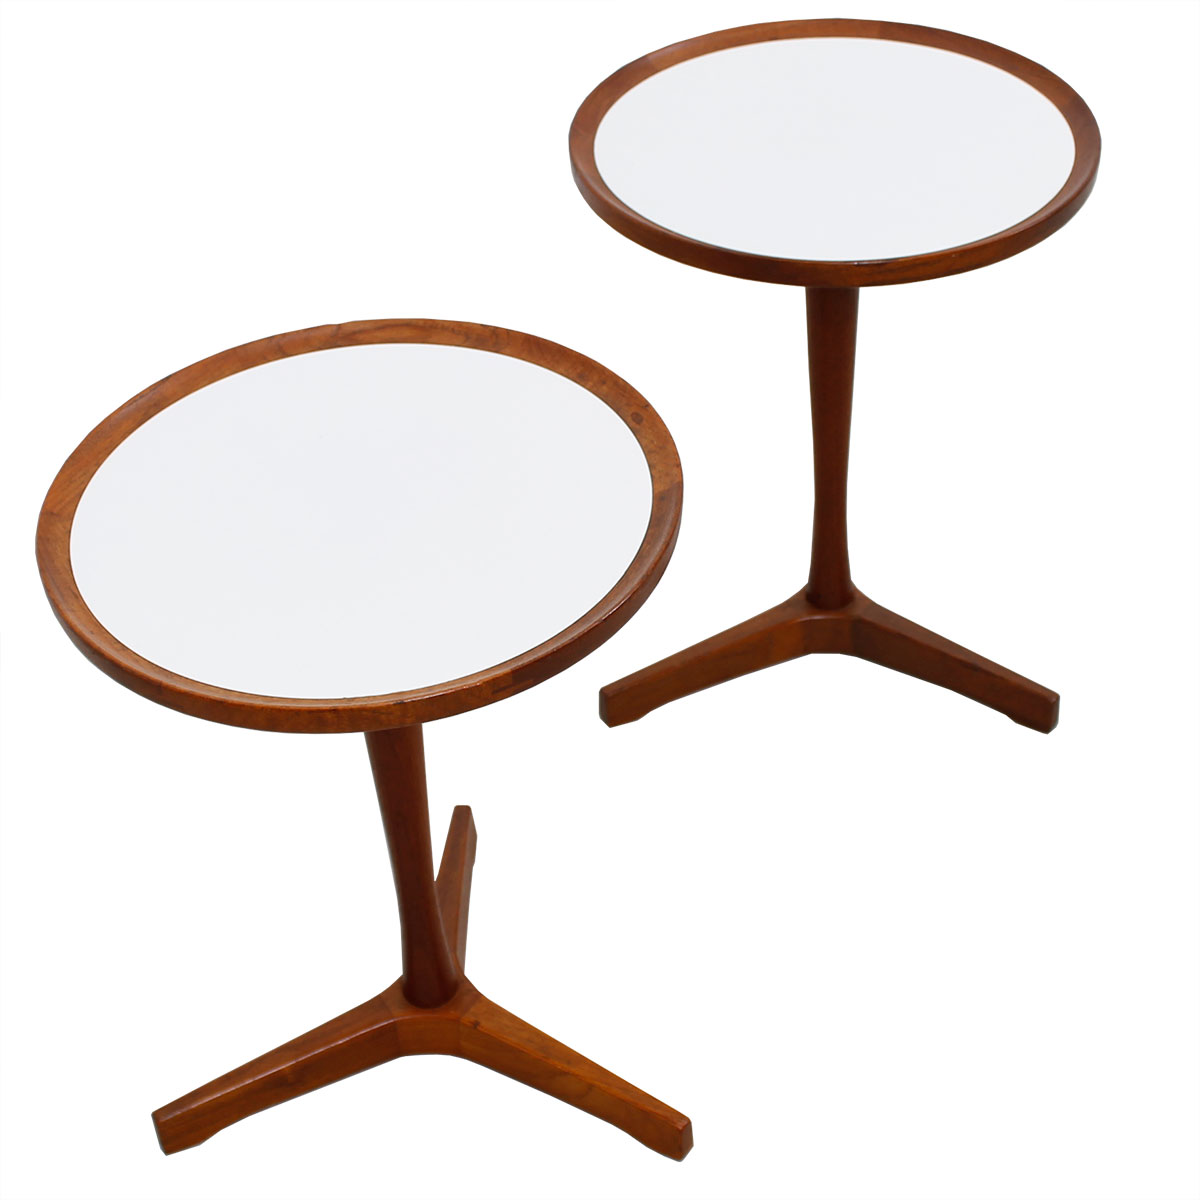 Pair of Hans C Andersen Accent / Cocktail Tables